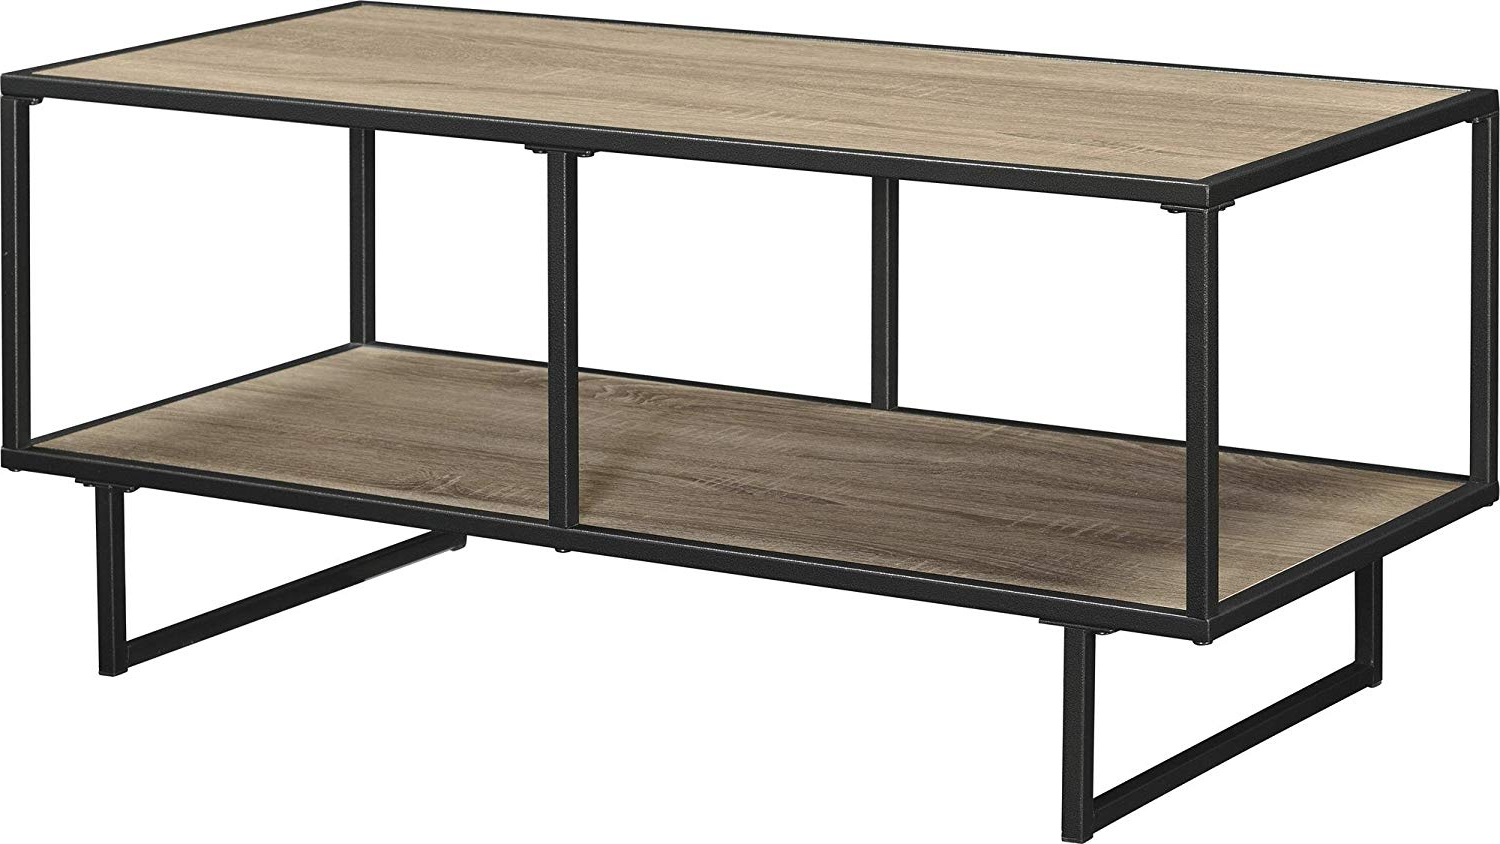 2017 Gunmetal Media Console Tables In Amazon: Ameriwood Home Emmett Tv Stand/coffee Table For Tvs Up (View 12 of 20)